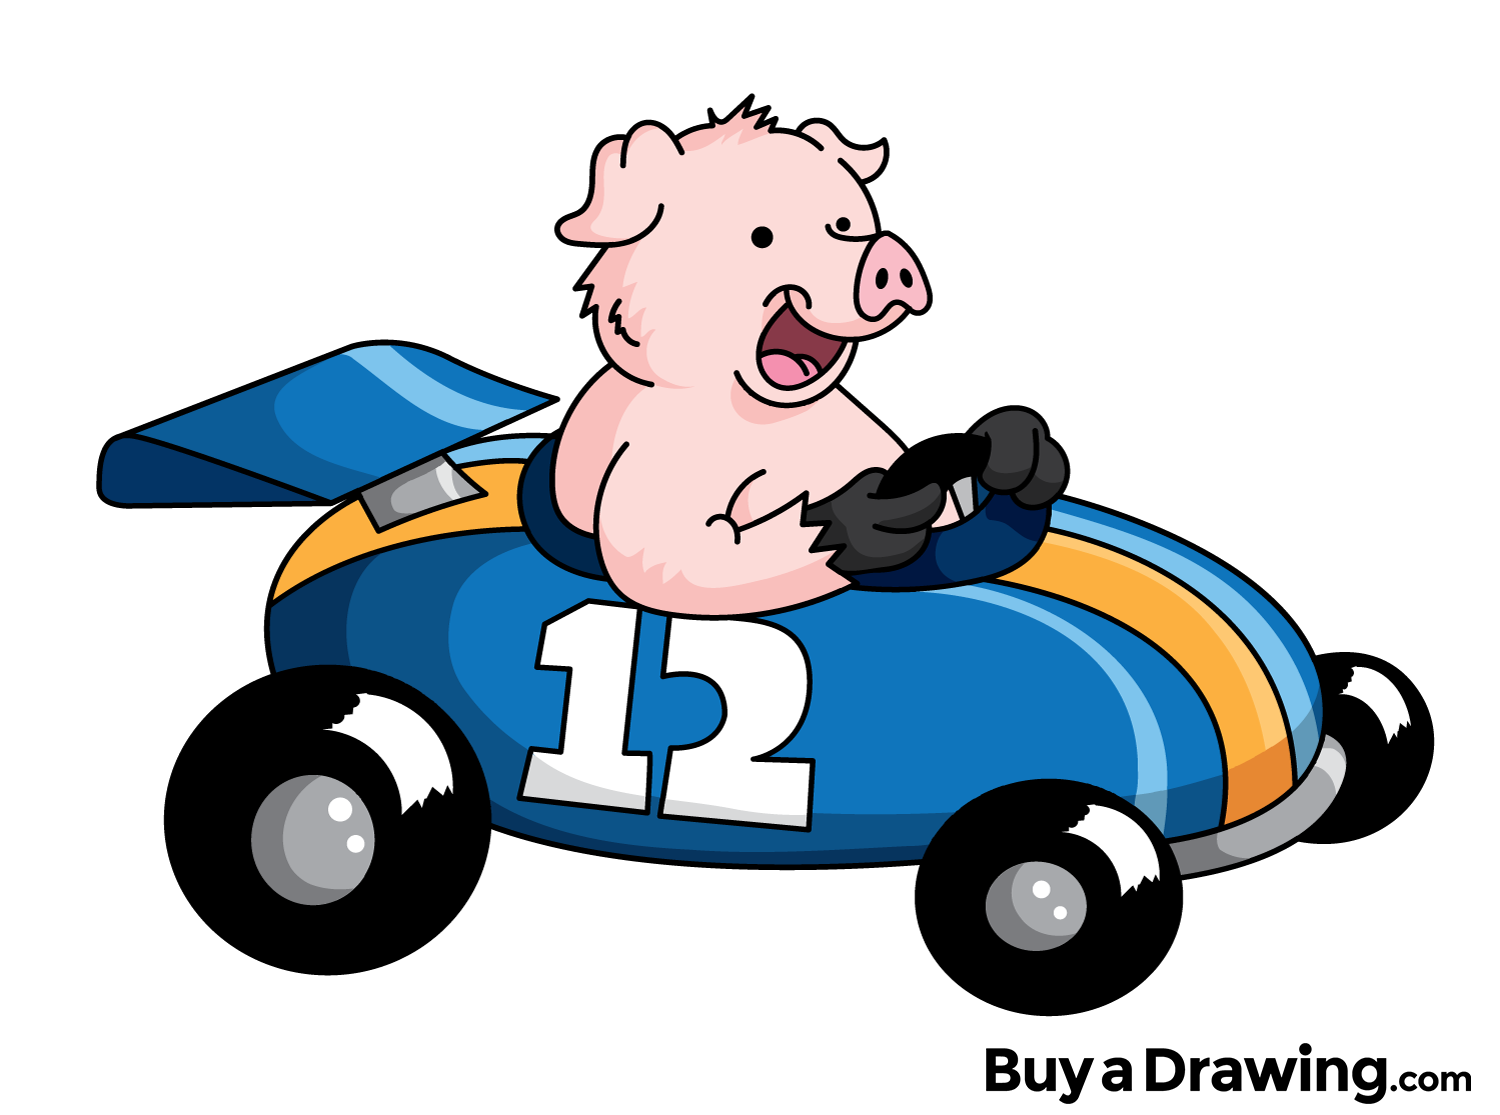 1500x1115 A Cartoon Pig In A Race Car That I Drew For The Heck Of It